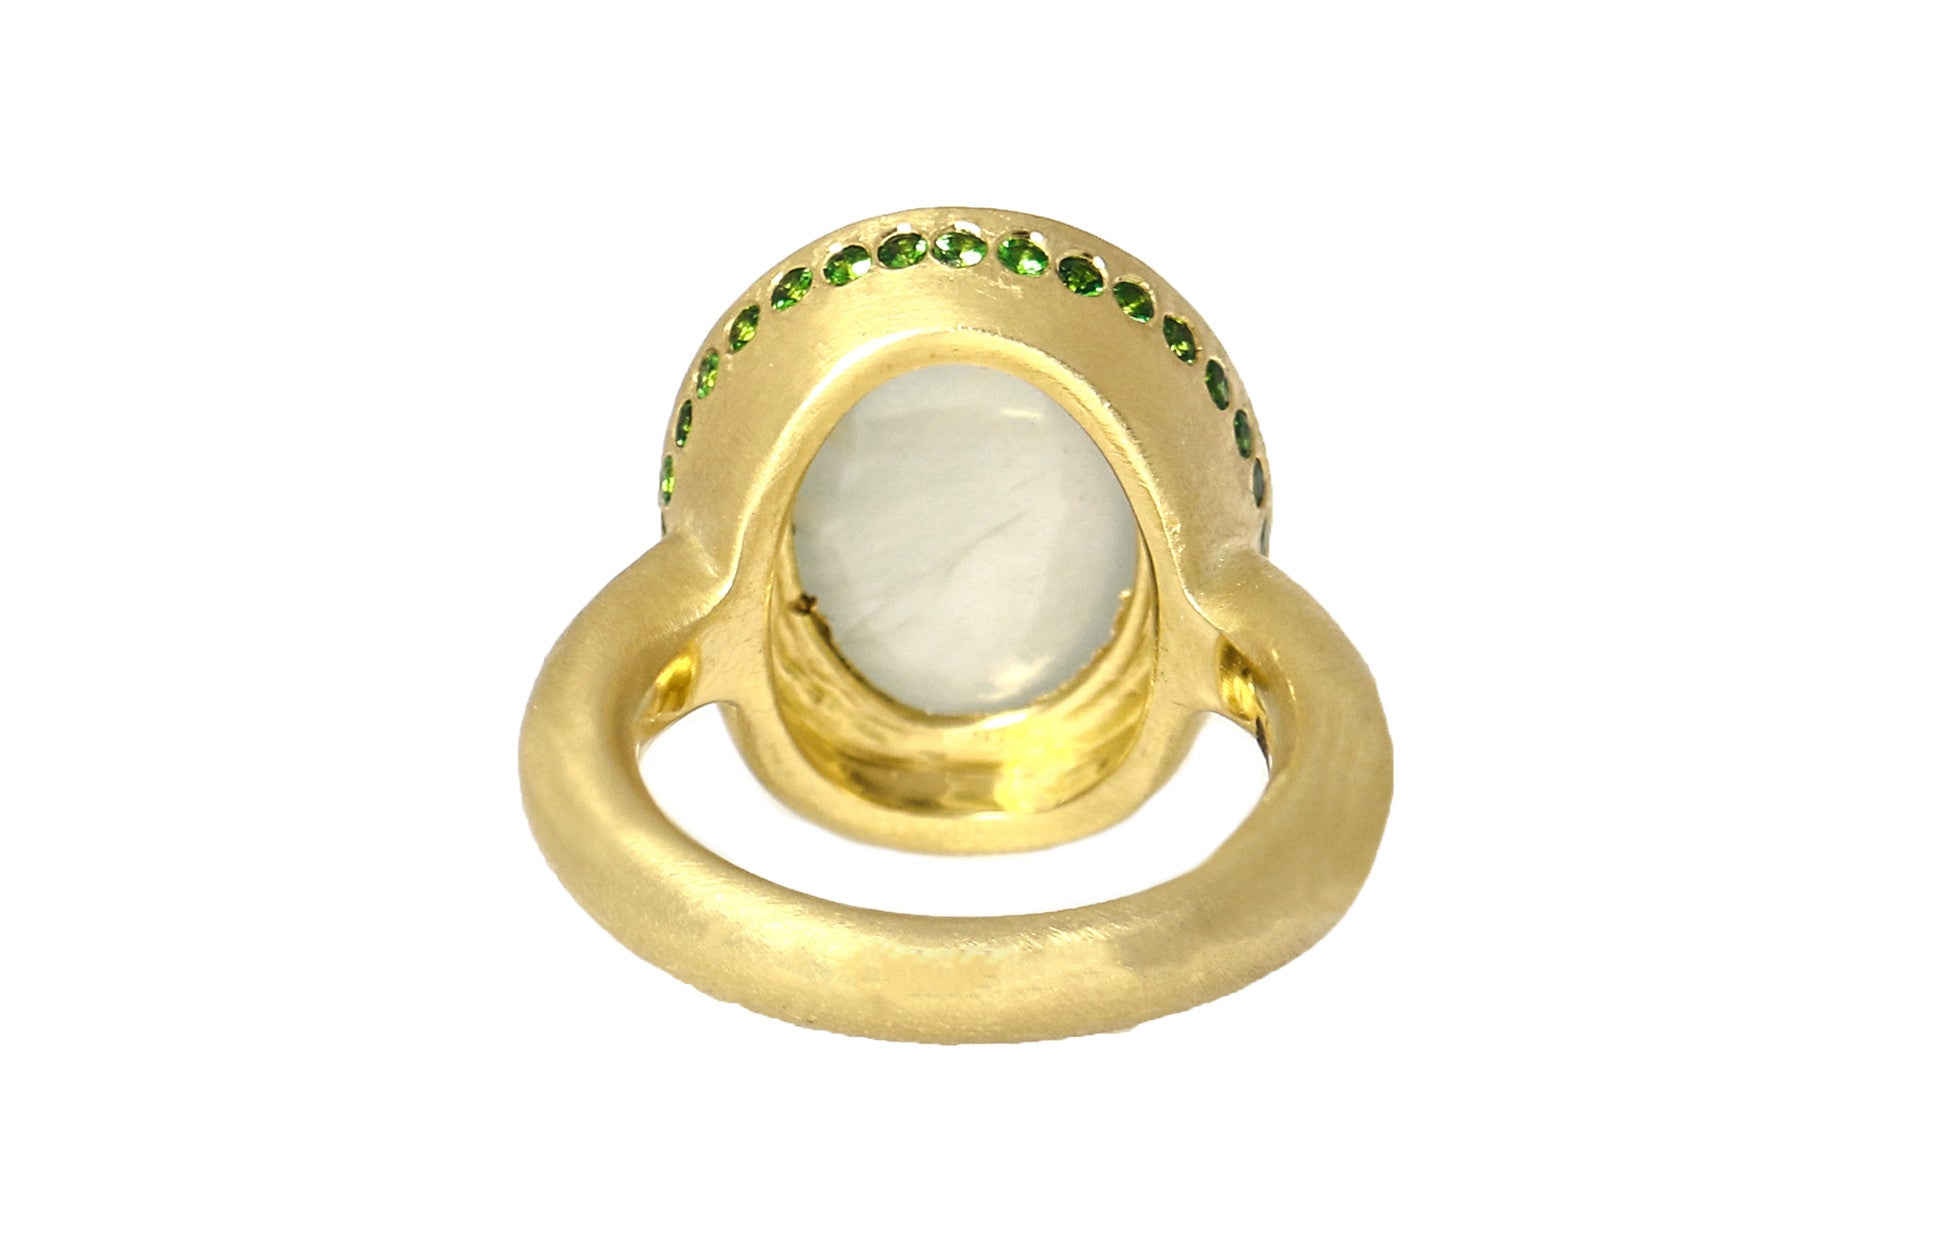 White Jadeite Cabochon Cocktail Ring with Green Garnets